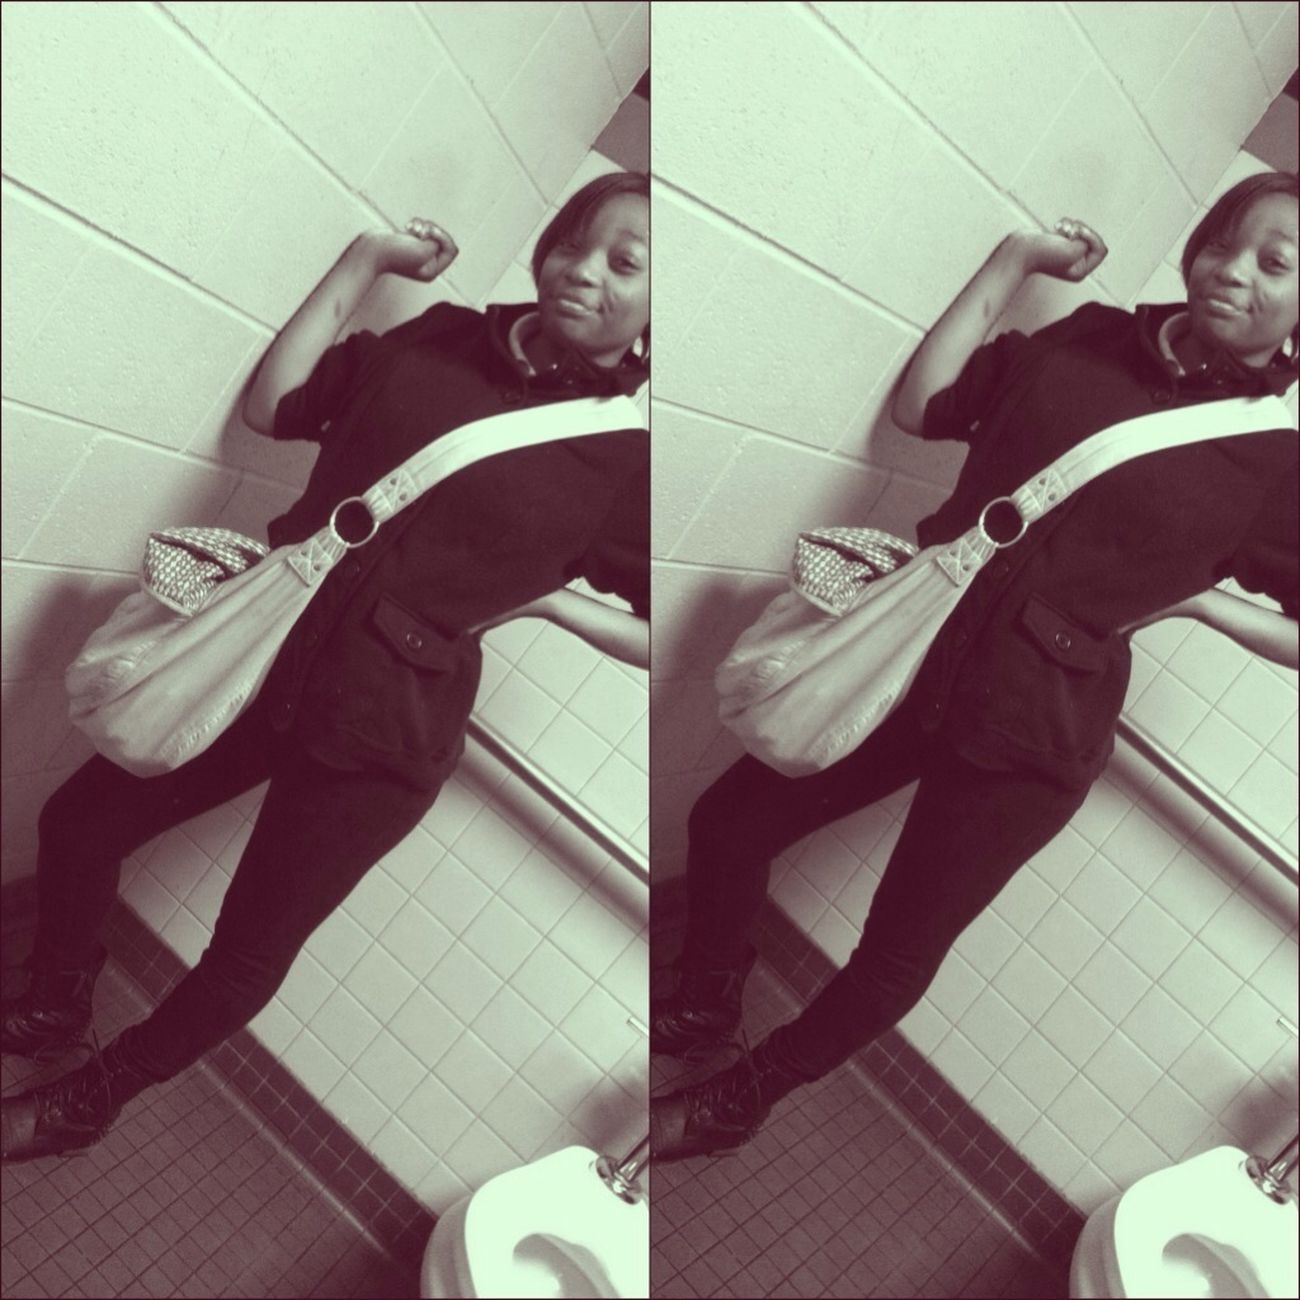 Mehhh Todayy NShit , I Wass Modeling